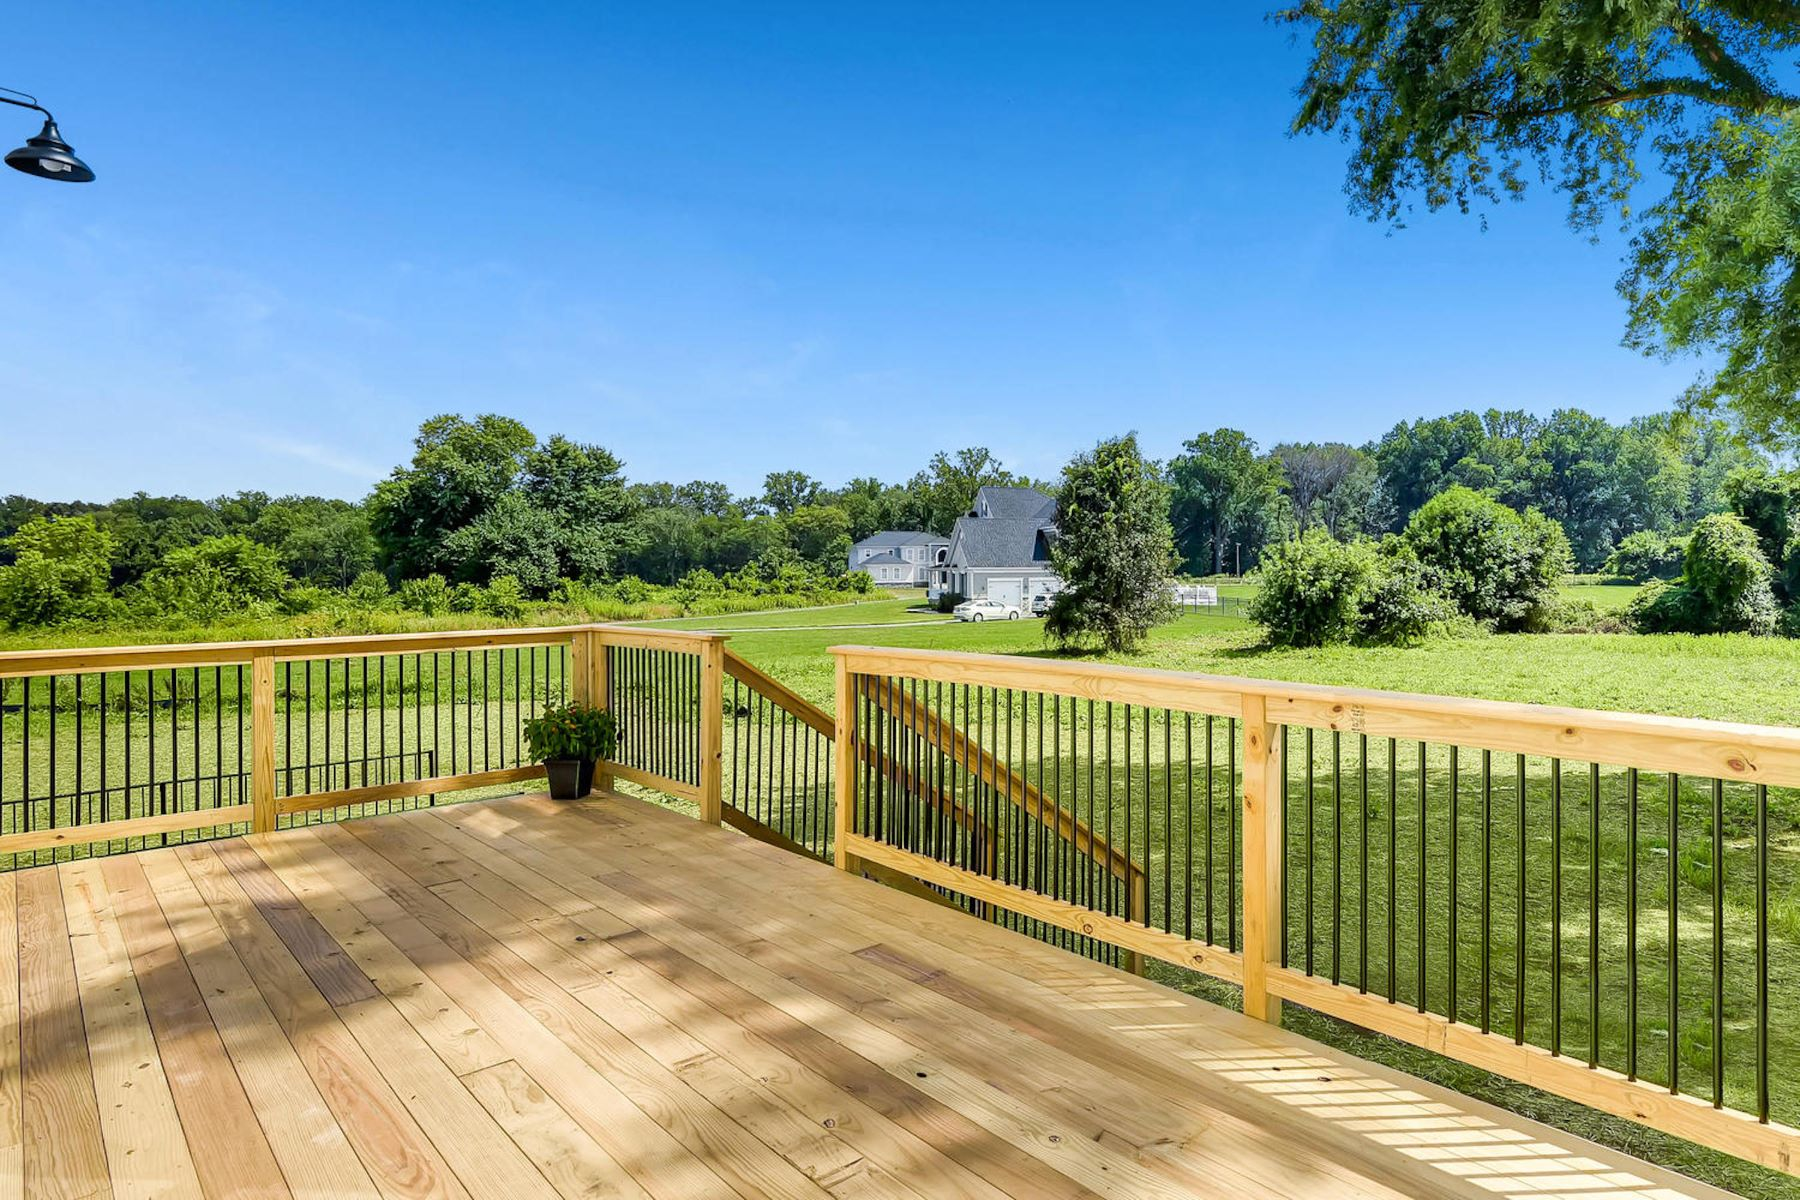 Additional photo for property listing at Ayres Property 2809 12 Stones Road, Bel Air, Maryland 21015 Verenigde Staten